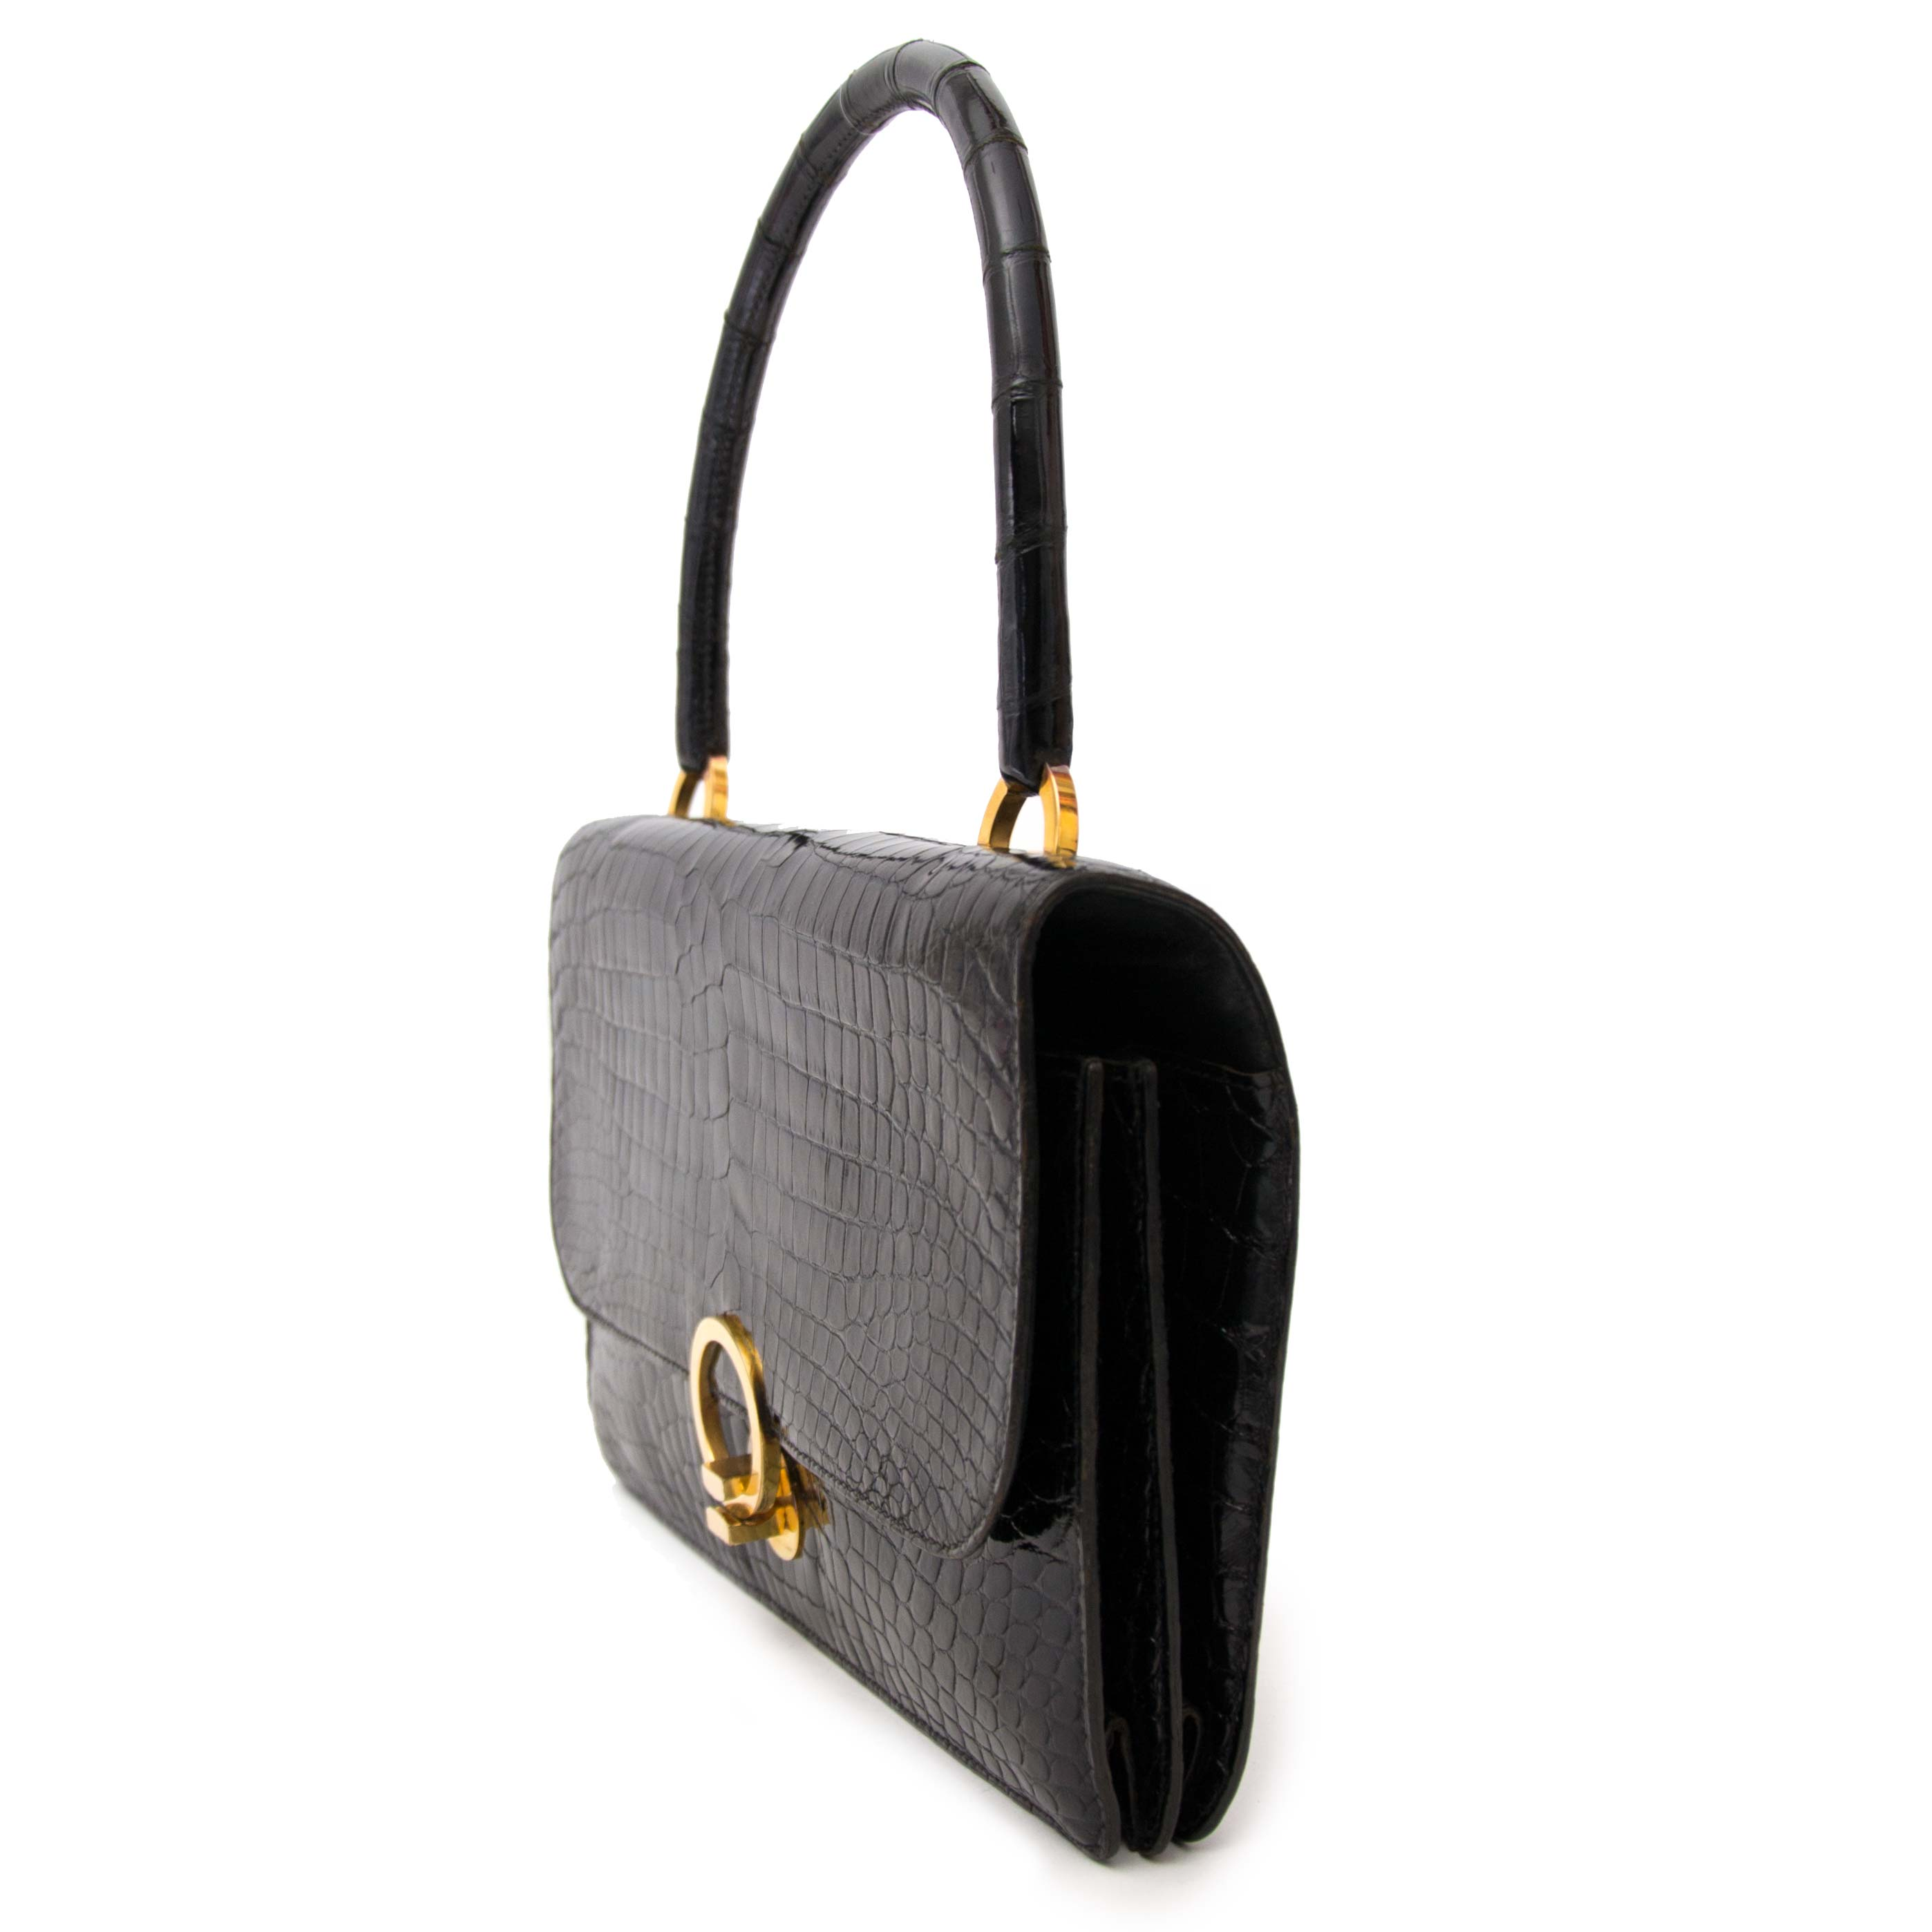 secondhand preloved luxury vintage searching for a secondhand Hermes Black Sac Ring Croco